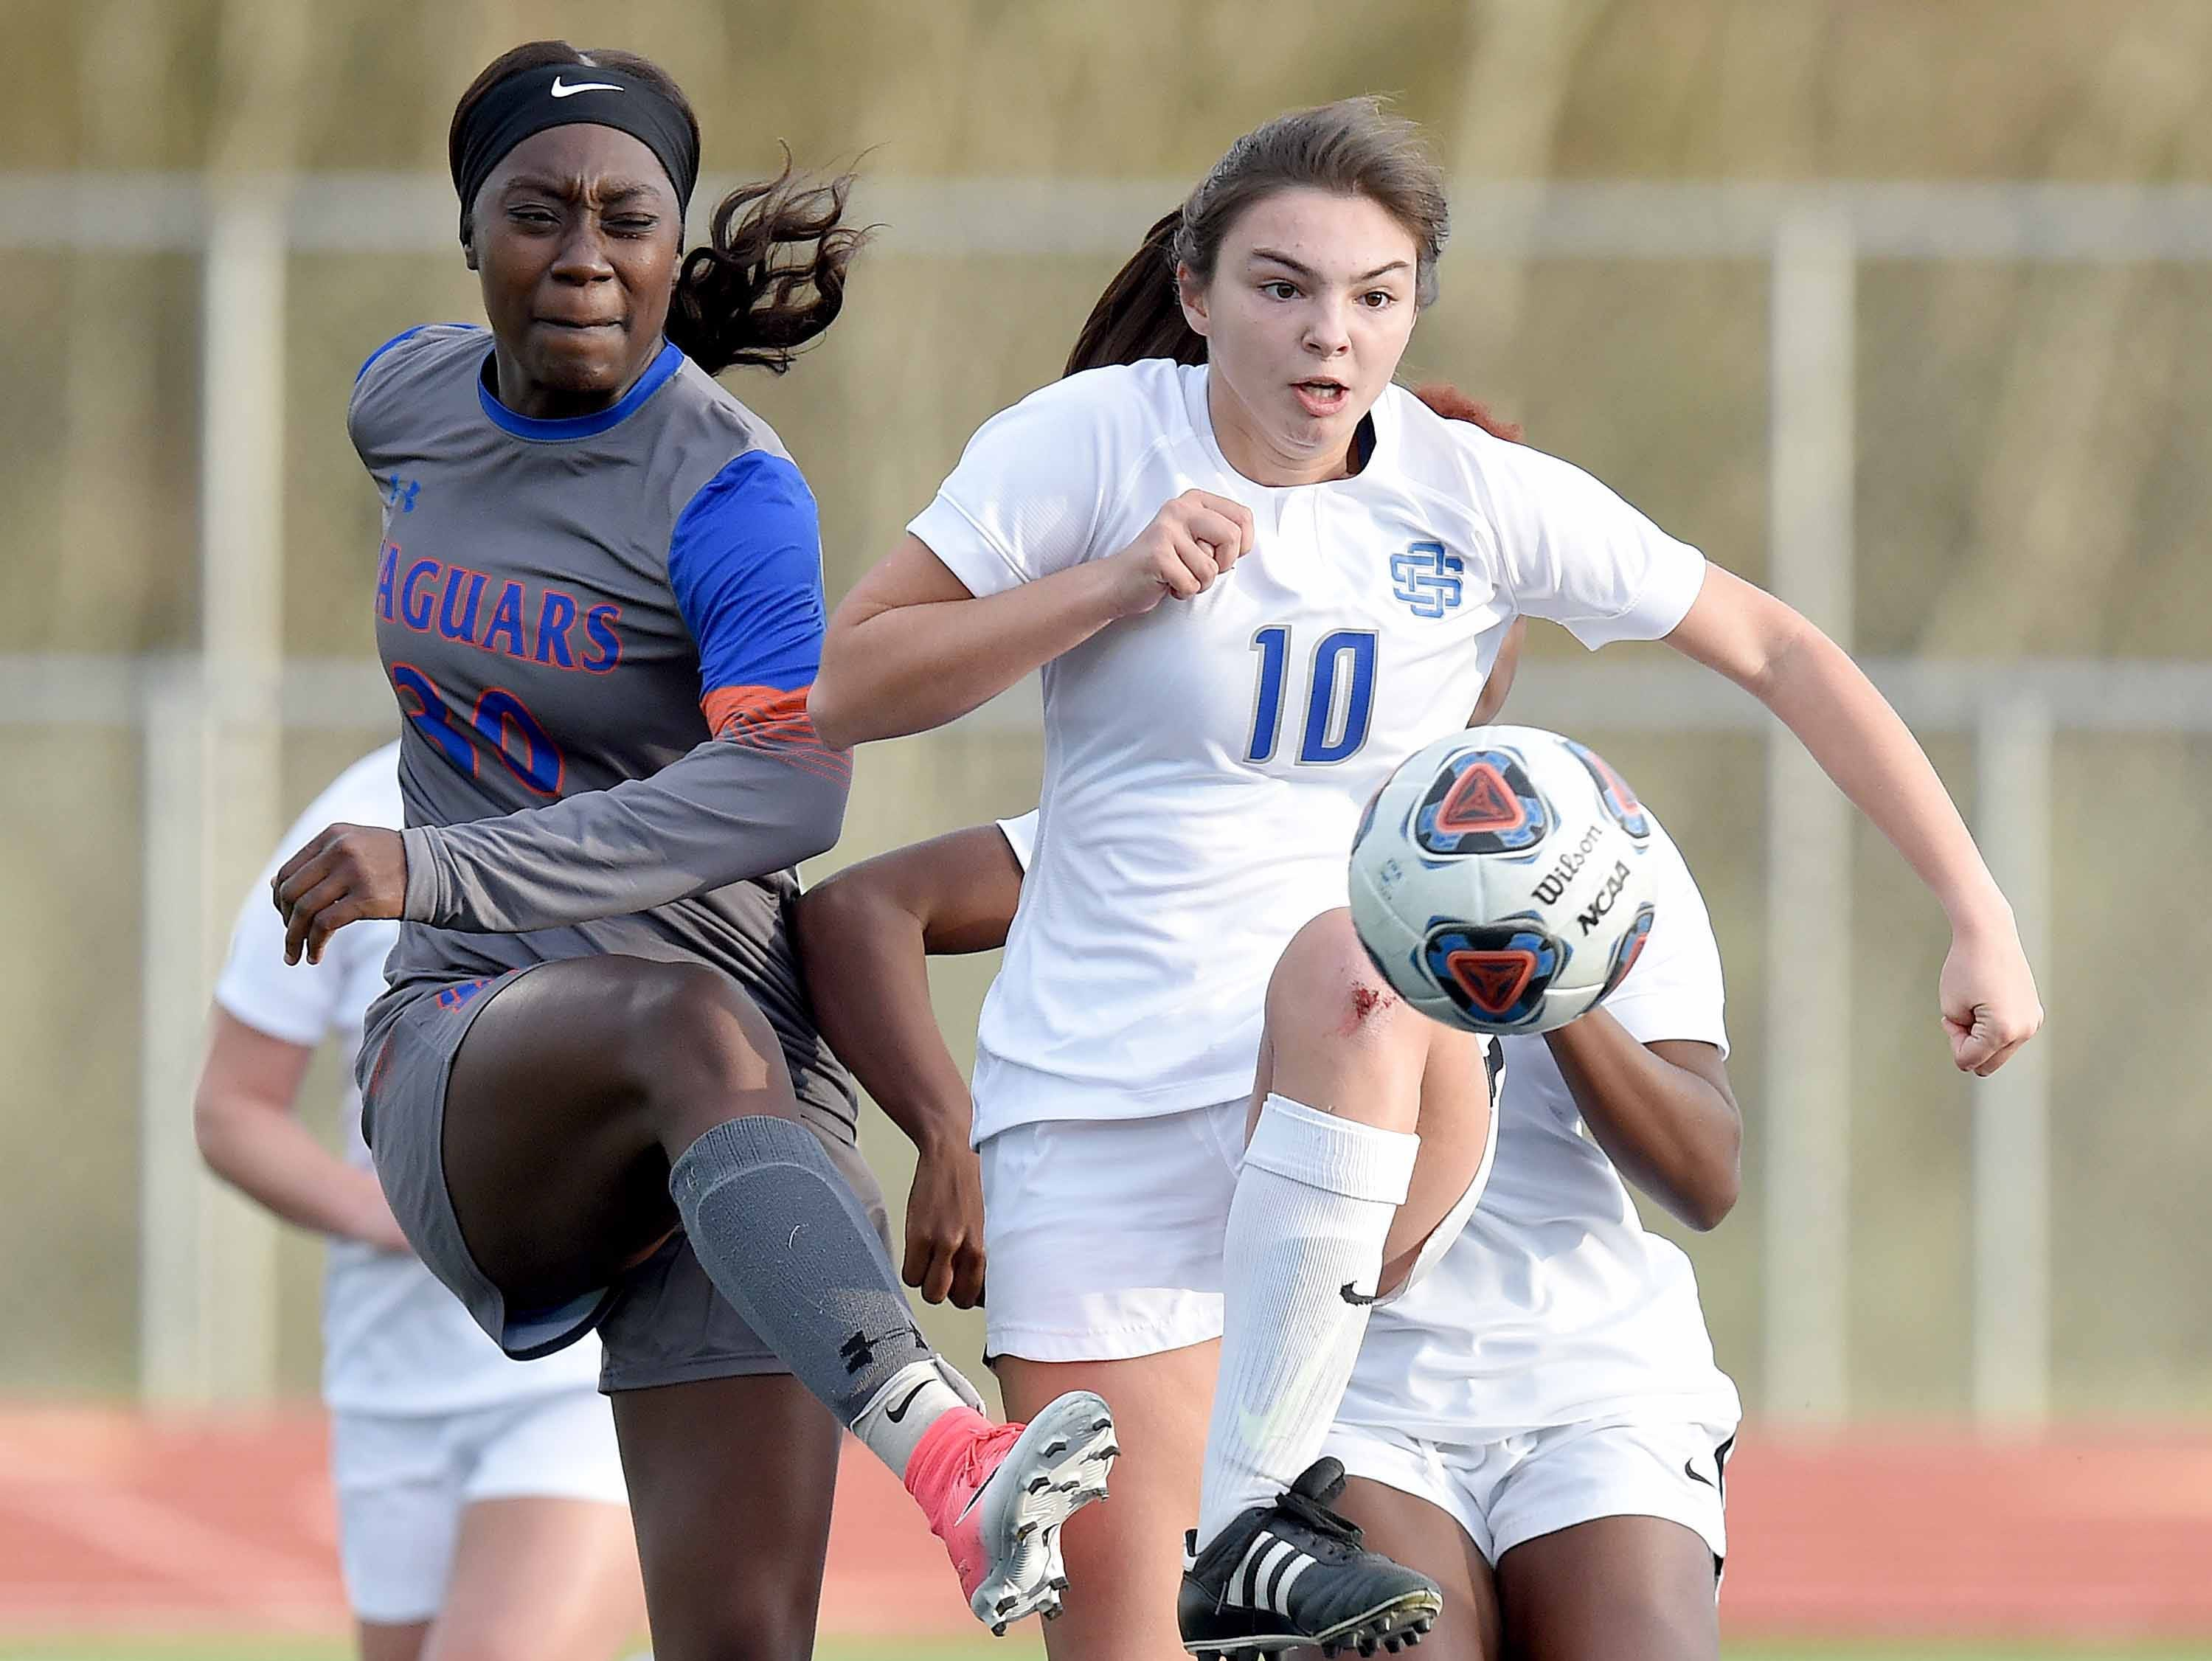 Madison Central's Cariel Ellis (30) and Ocean Springs' Jackie Dilorenzo (10) fight for a loose ball in the Class 6A state championship in the MHSAA BlueCross Blue Shield of Mississippi Soccer Classic on Saturday, February 9, 2019, at Ridgeland High School in Ridgeland, Miss.